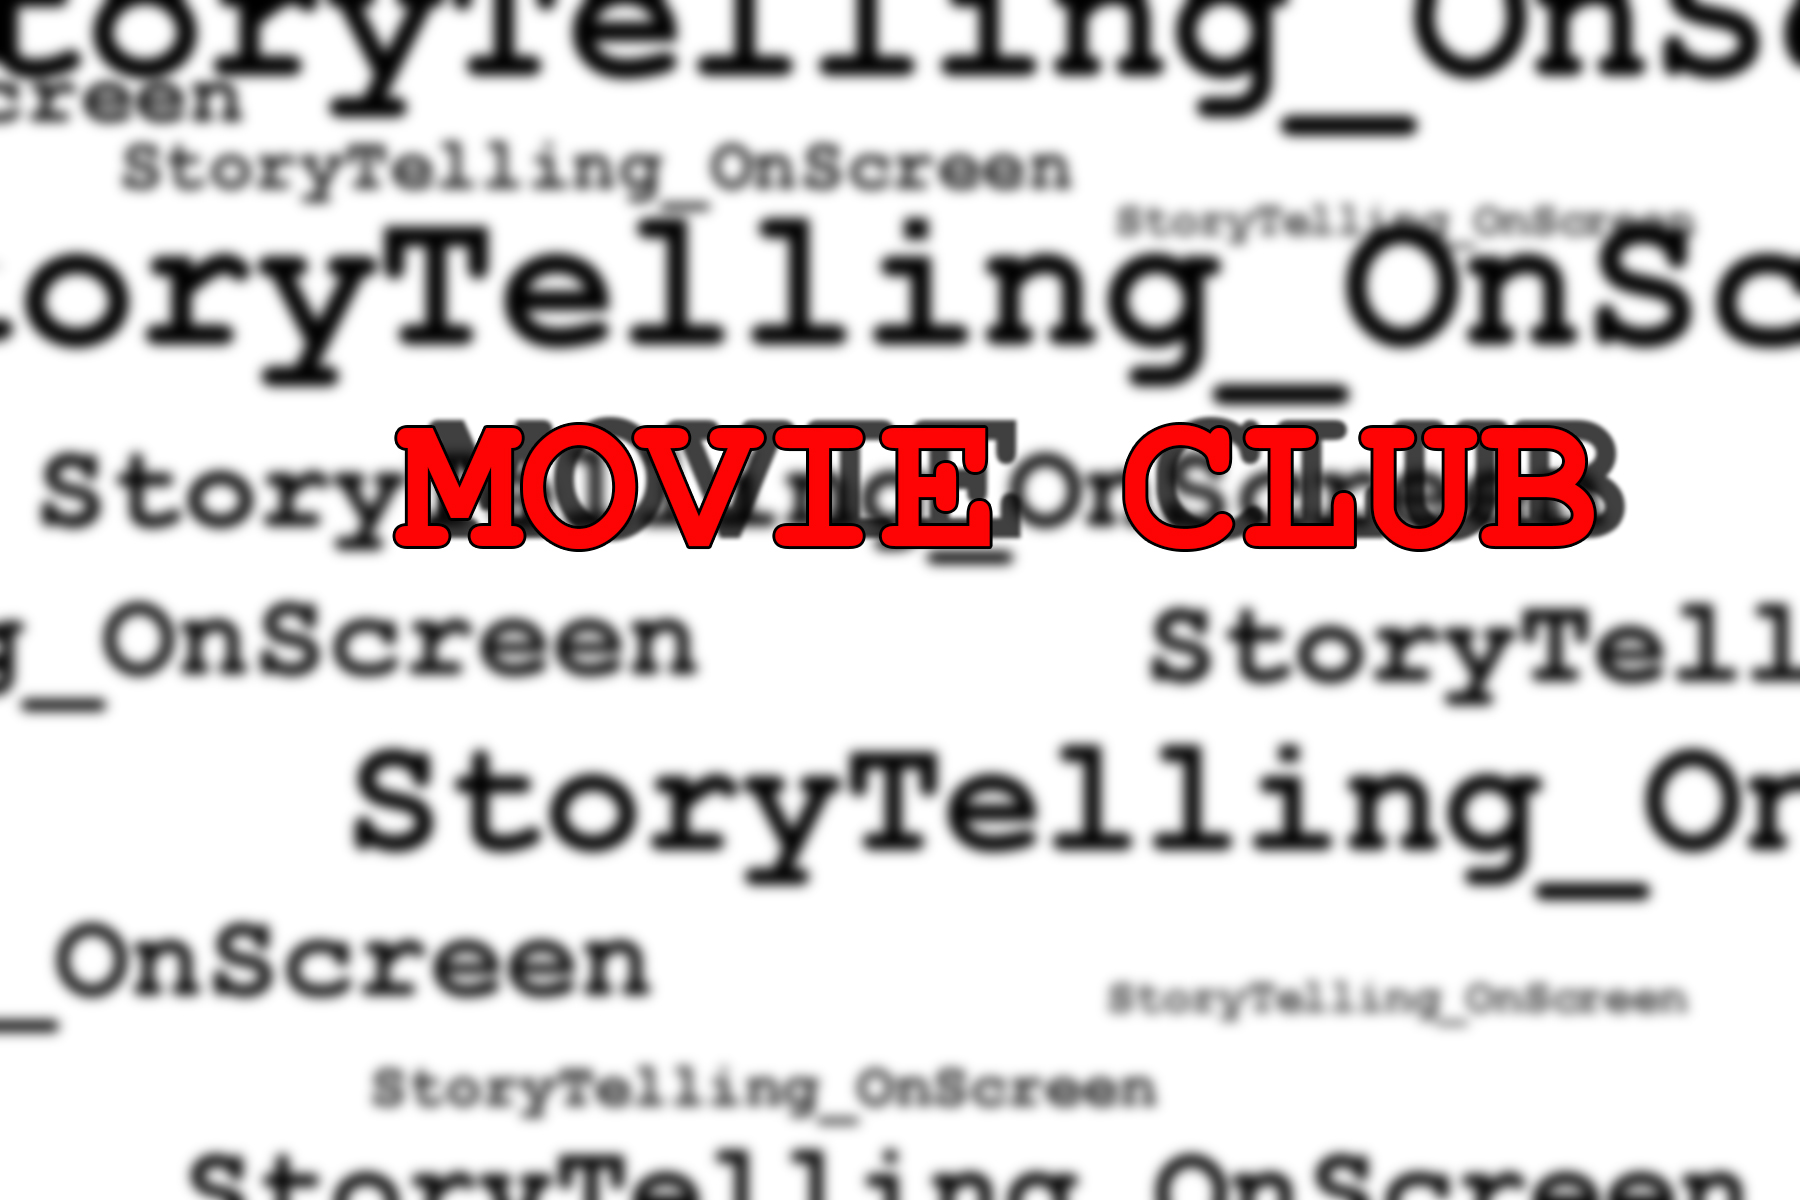 StoryTelling_OnScreen Movie Club